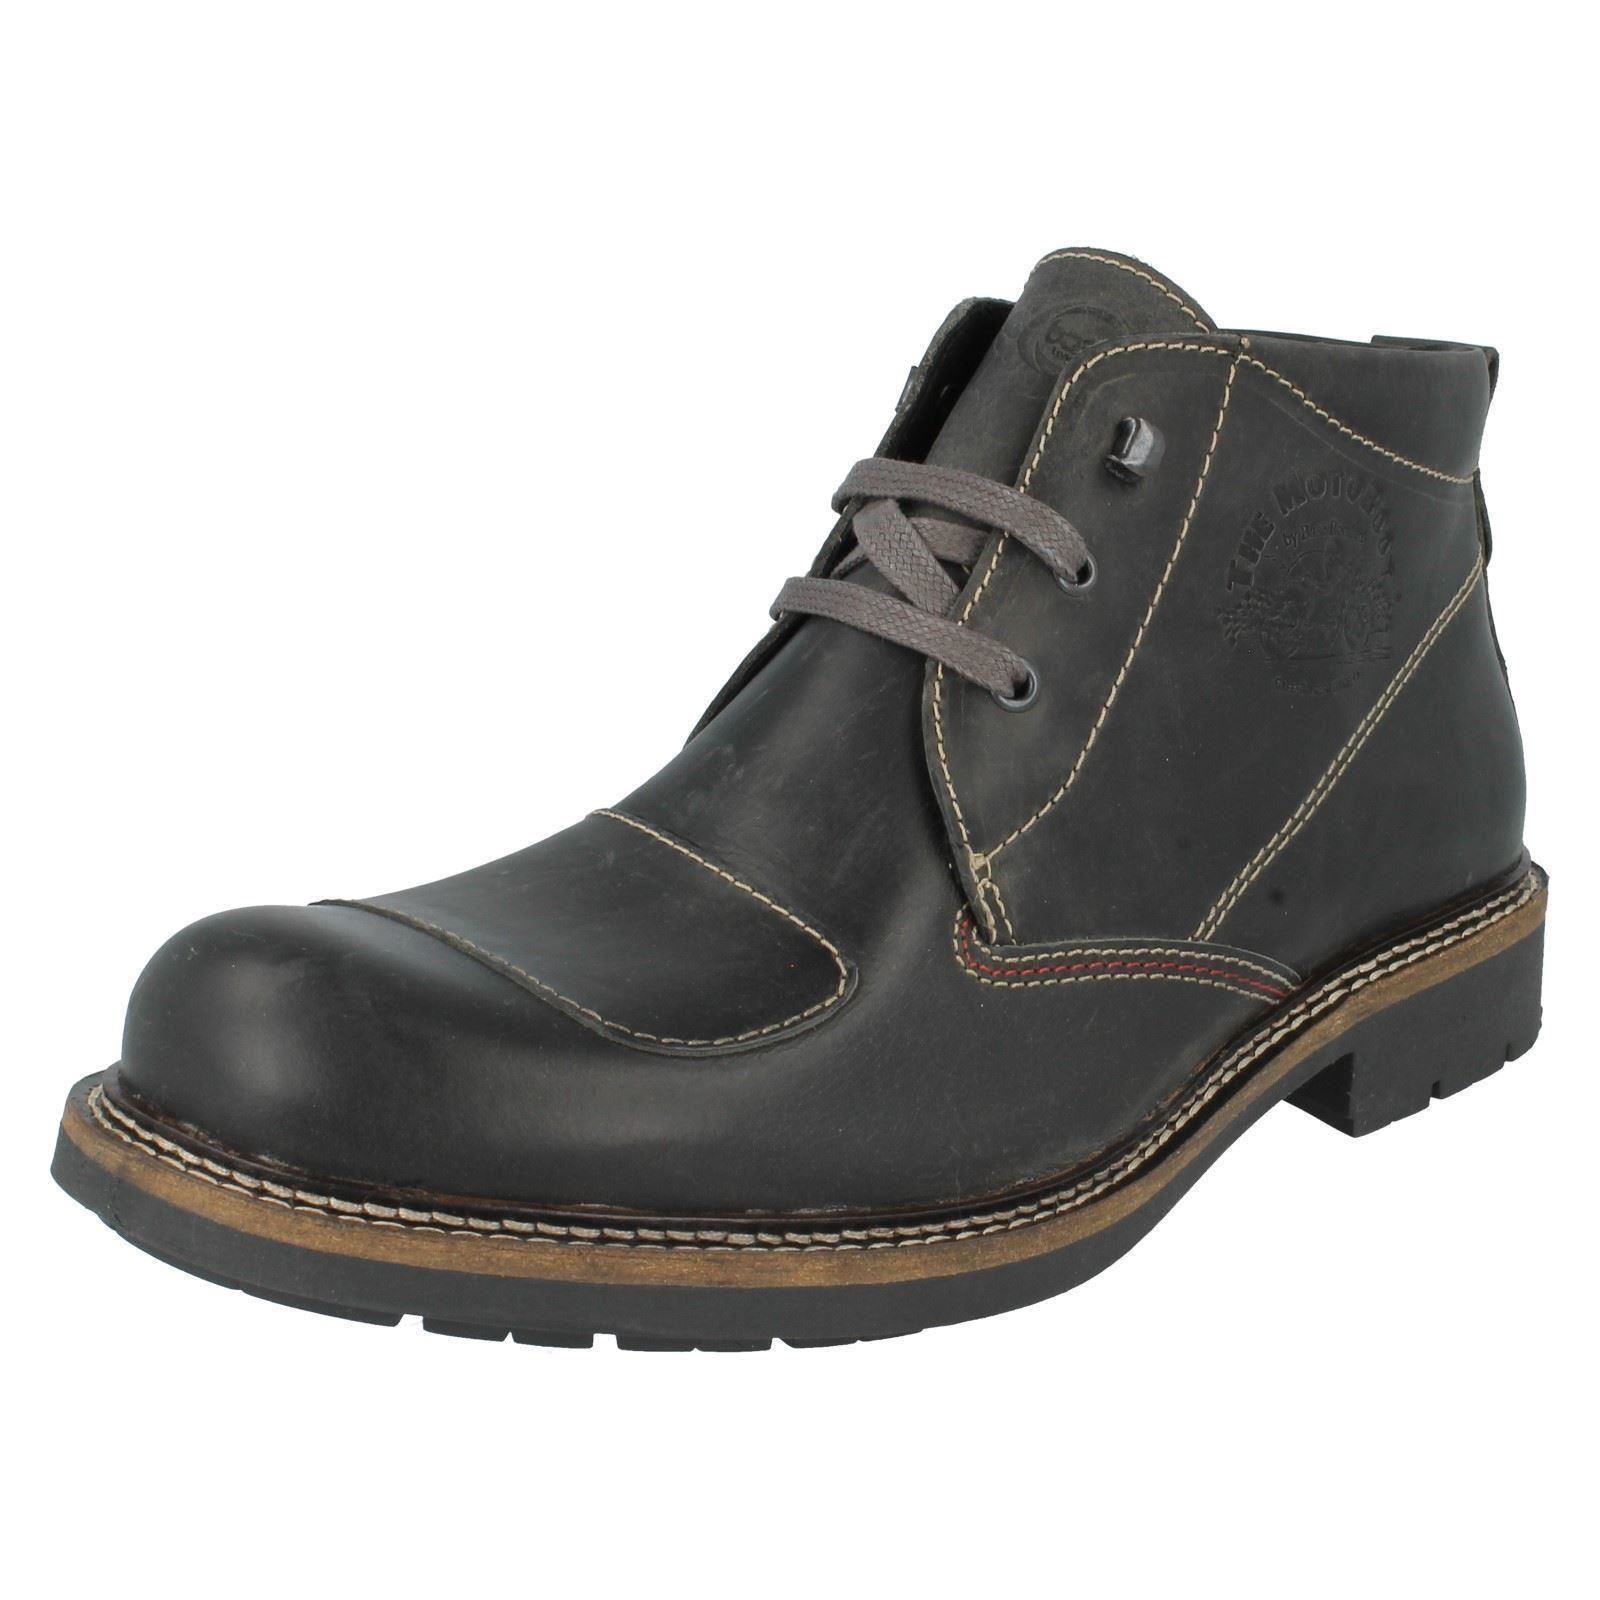 Mens Mens Mens Base London Lace Up Ankle Boots Stroke 2e6141